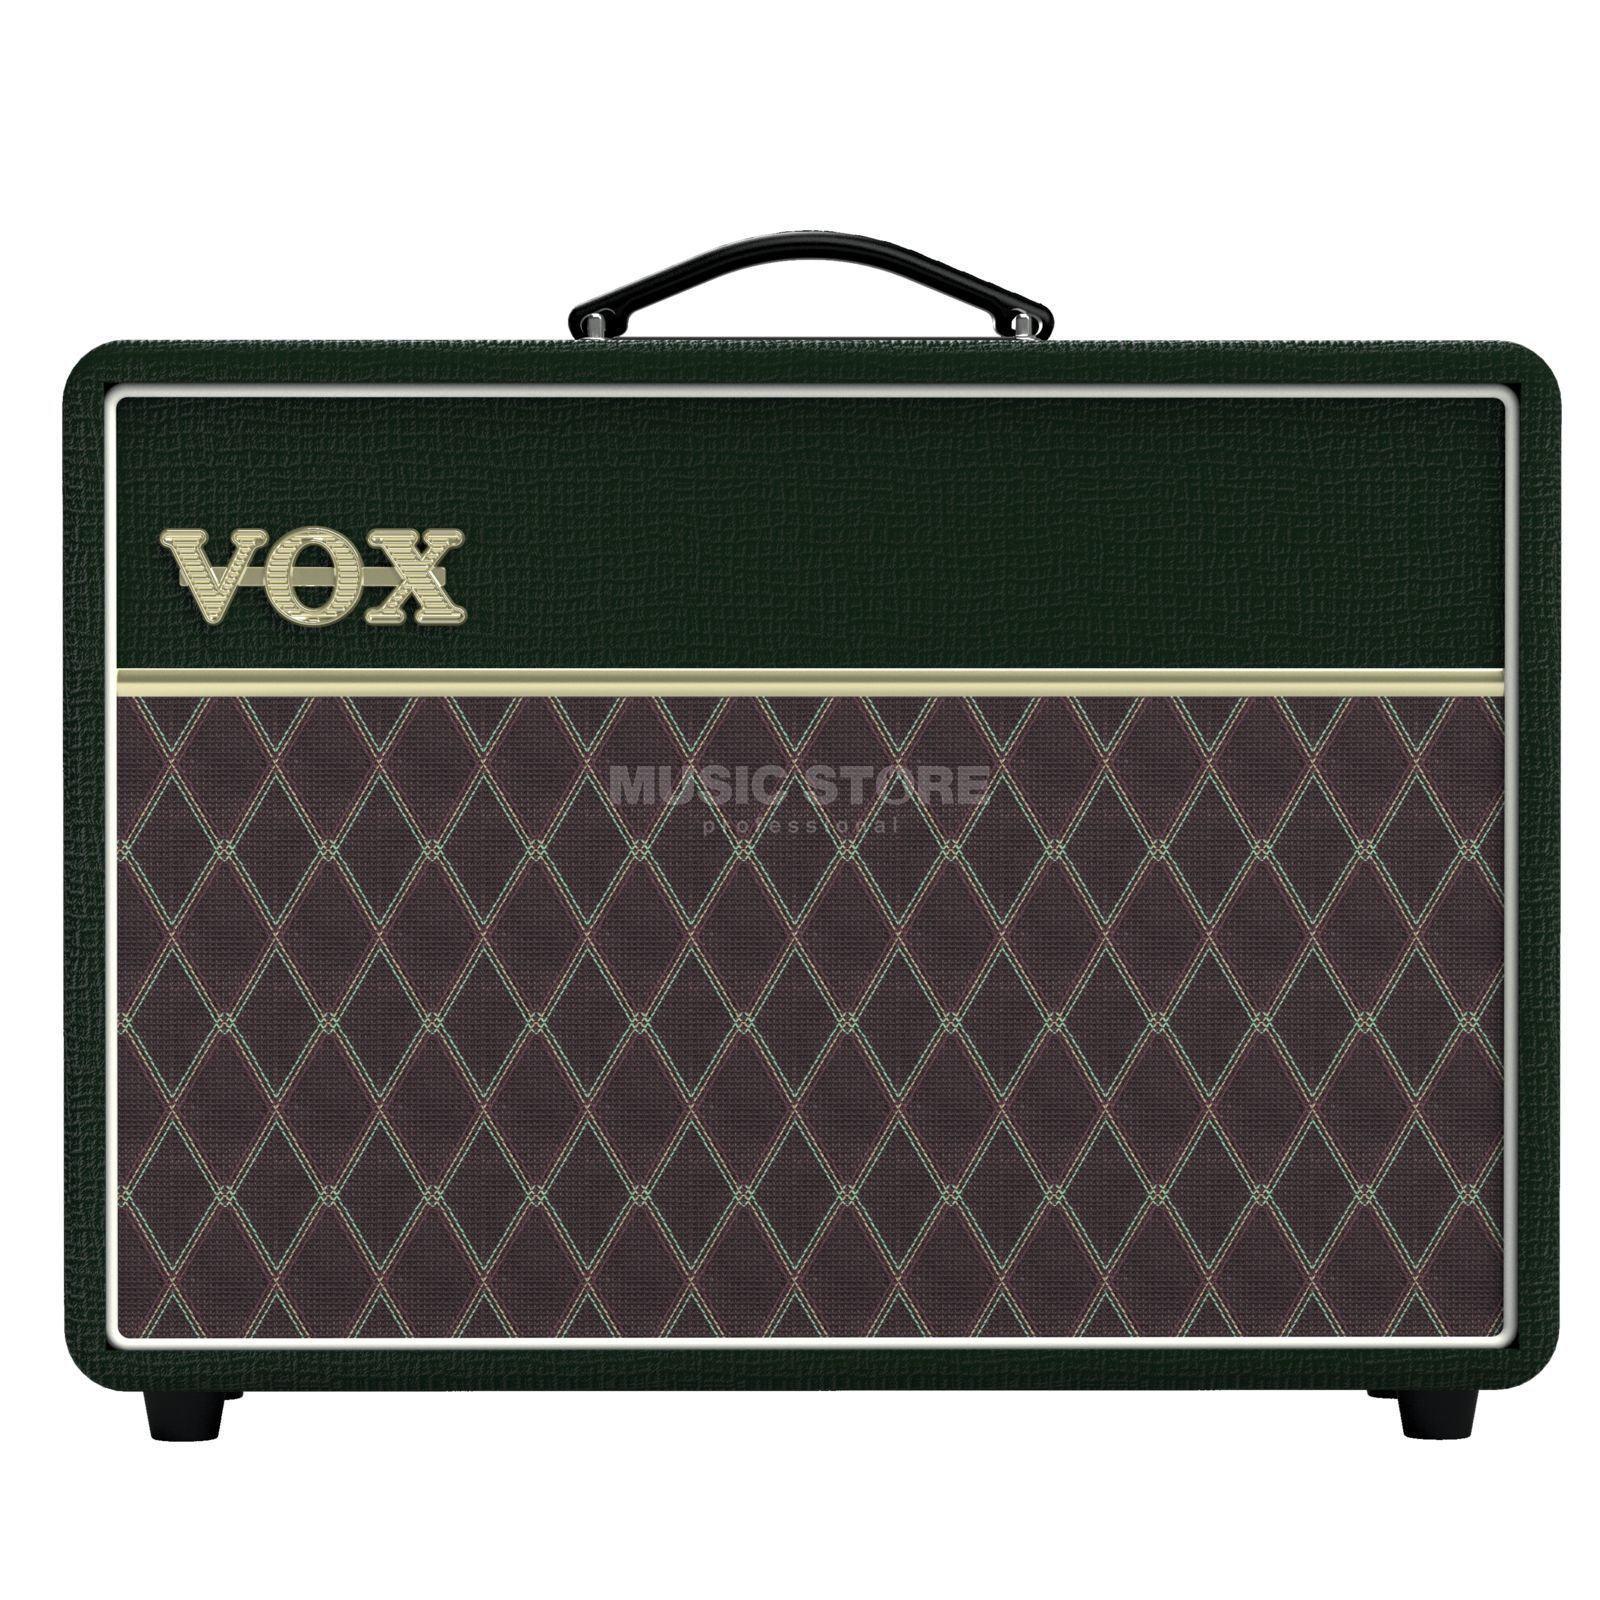 VOX AC10C1 Limited Edition British Racing Green Produktbillede